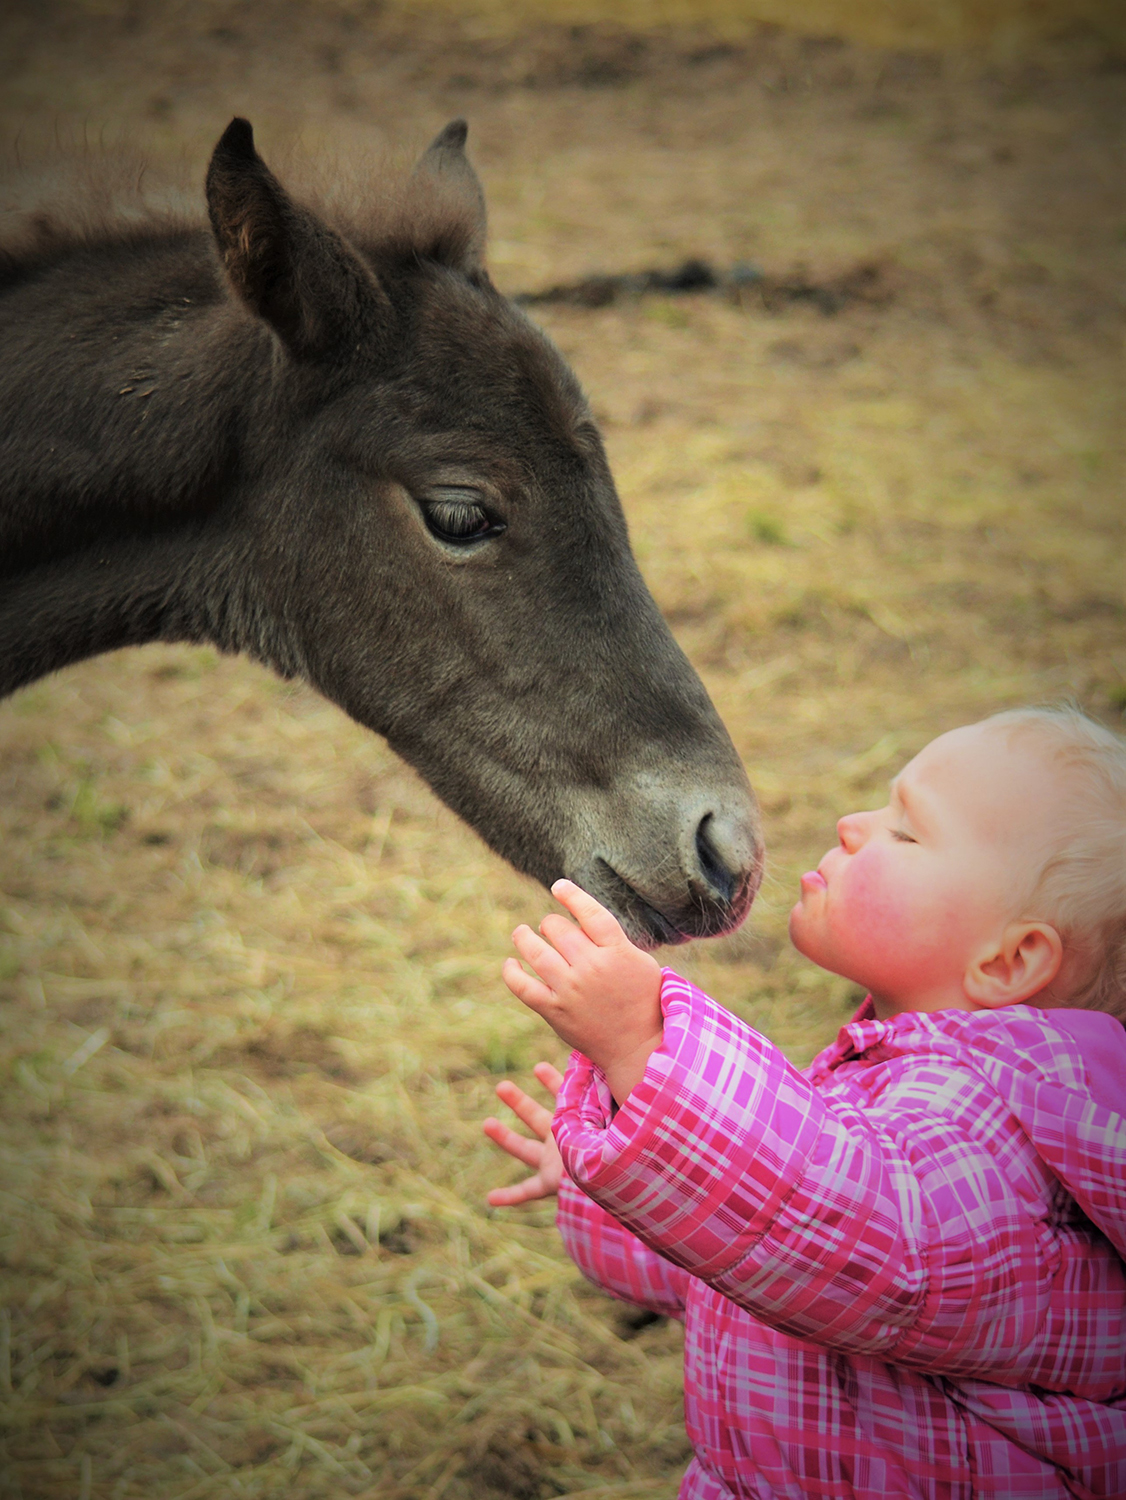 child with foal. Photo credit Toril Strooper